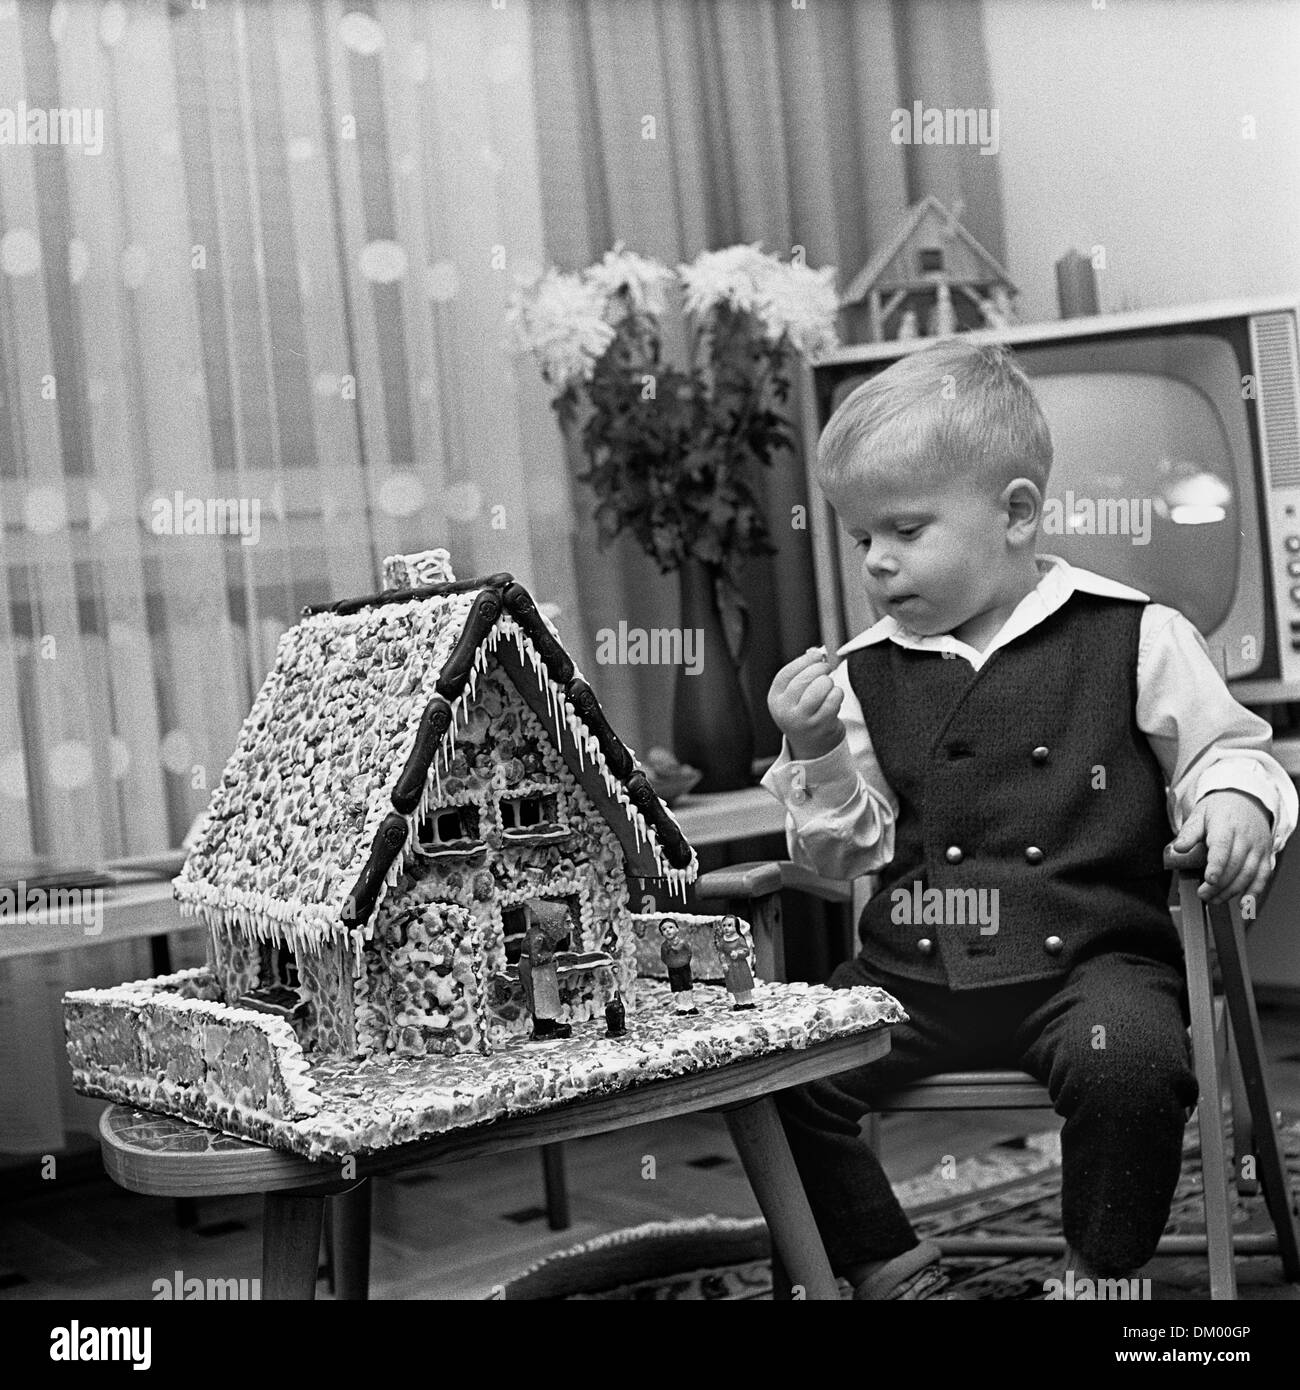 Wunderbar A Small Boy Sits Next To A Ginger Bread House And In Front Of A TV